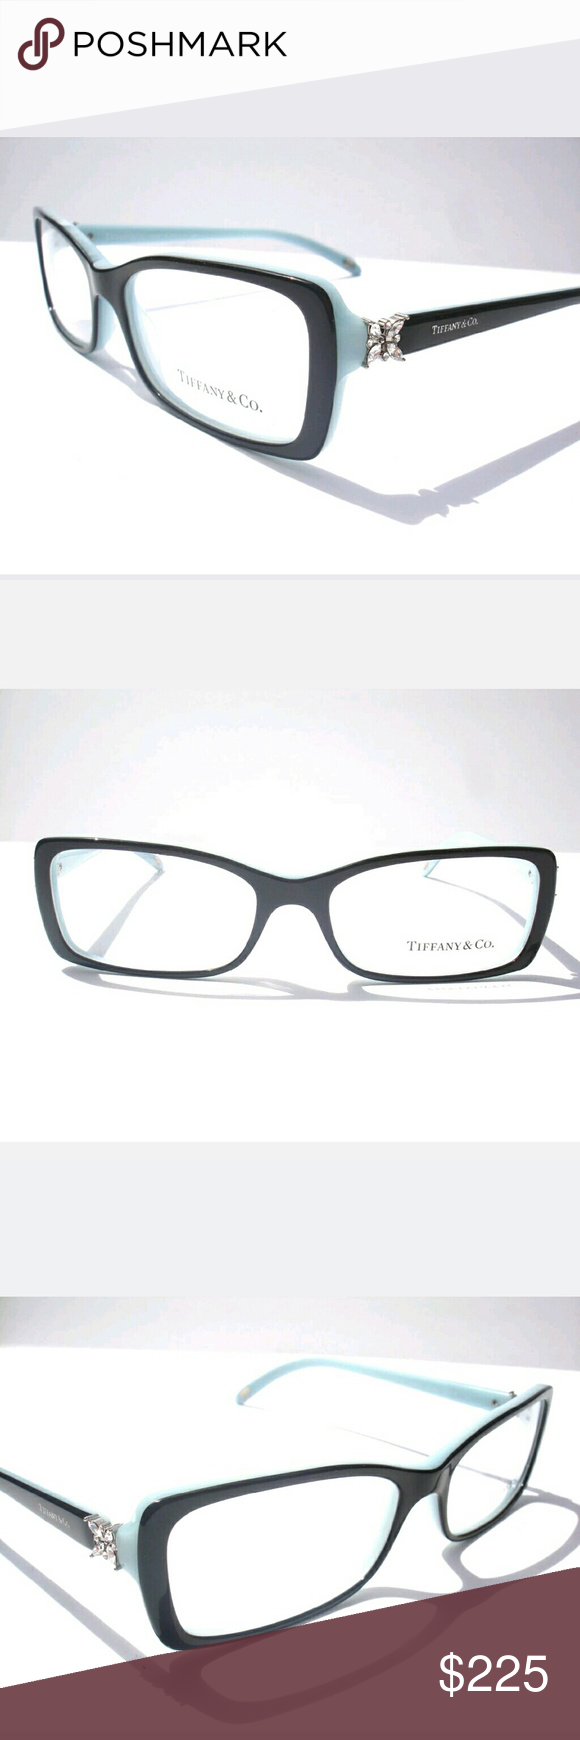 tiffany and co eyeglasses new and authentic tiffany and co eyeglasses black and teal frame size